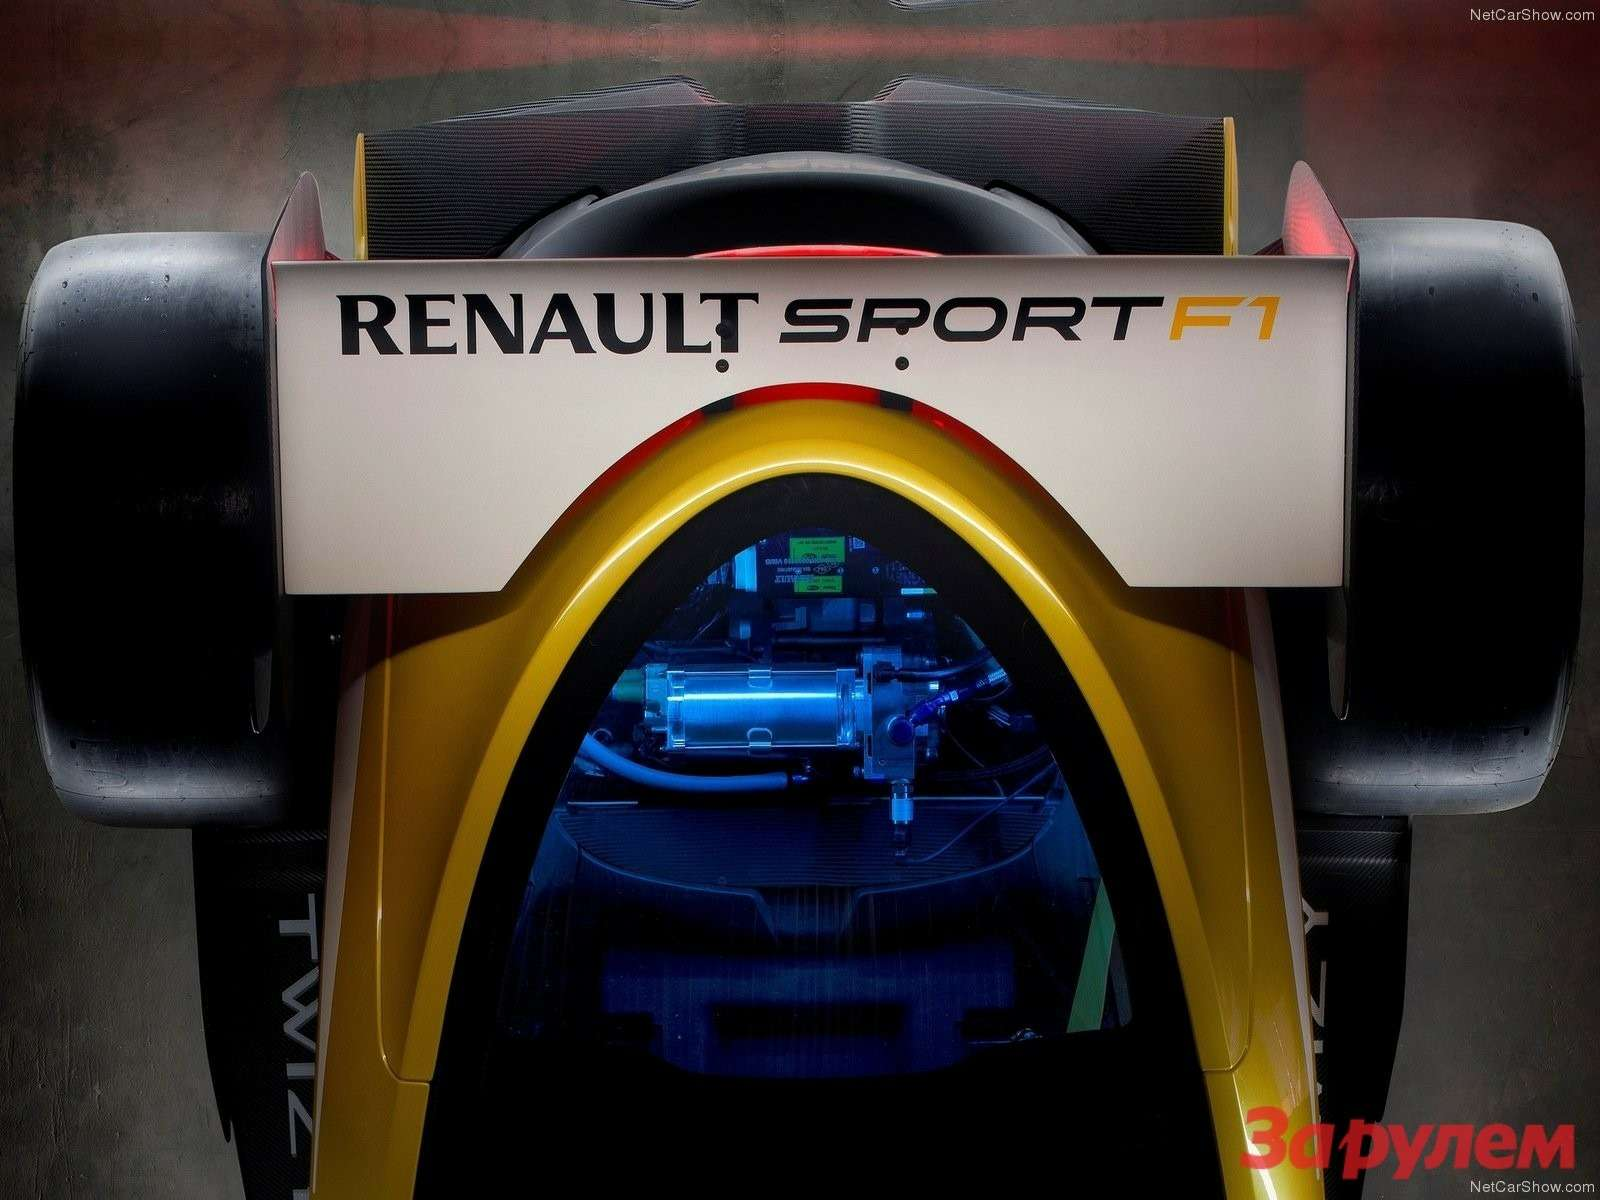 Renault Twizy RSF1Concept 2013 1600x1200 wallpaper 06